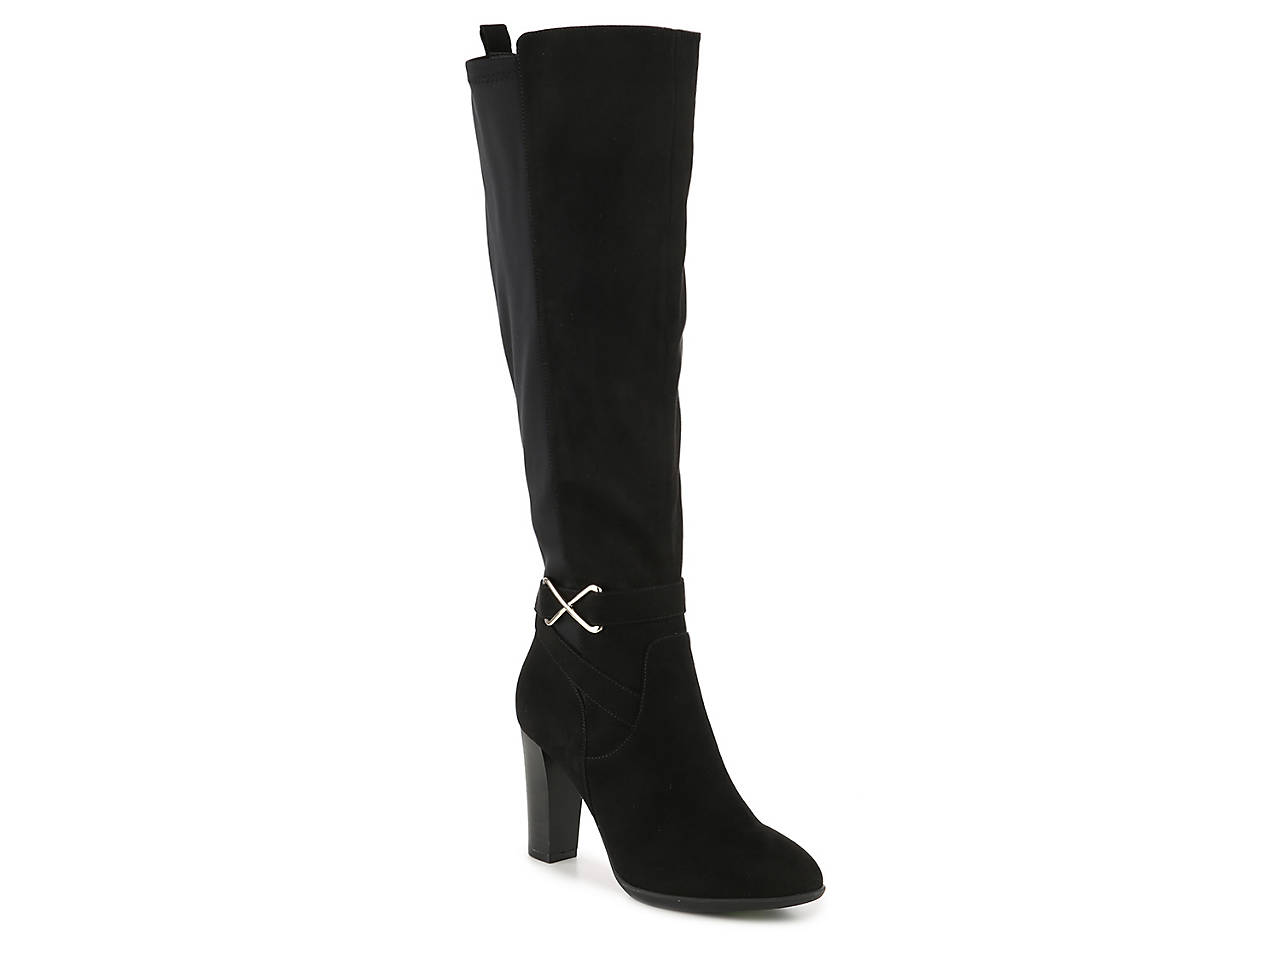 076952b37776 Kelly   Katie. Dawsyn Wide Calf Boot. InStock.  79.99  59.98. Comp. value   90.00